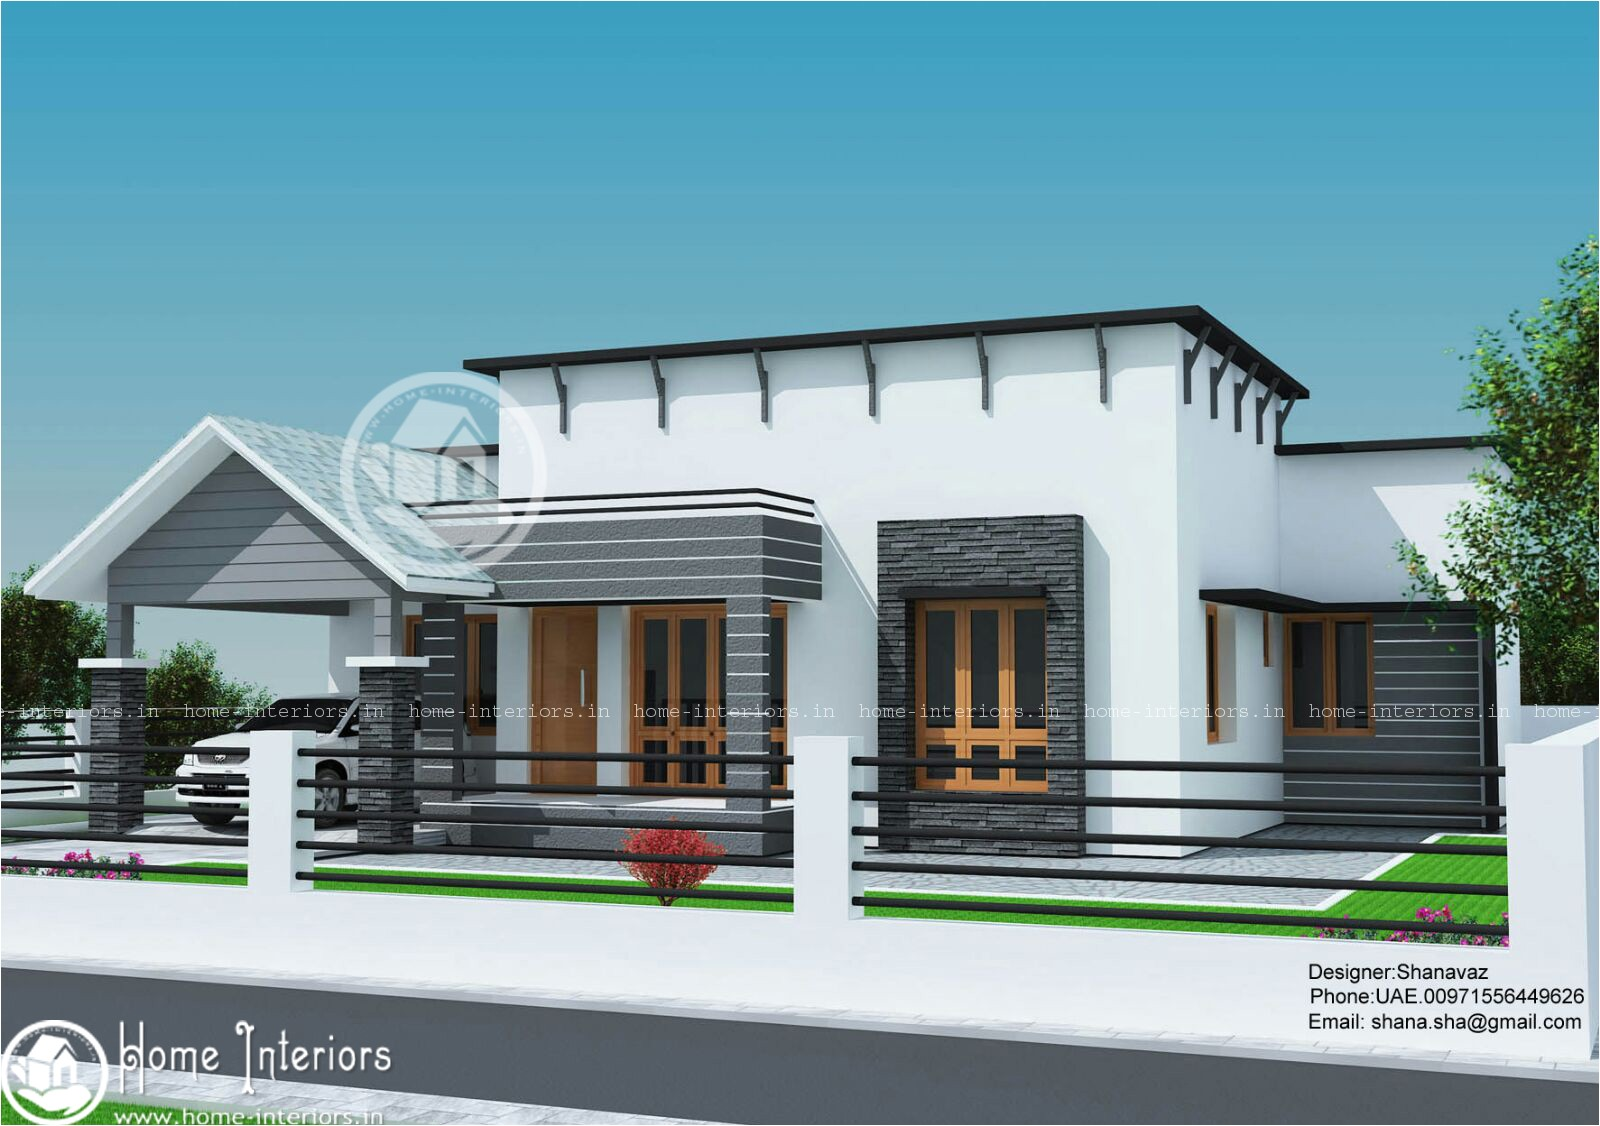 1300 sq ft single floor contemporary home design